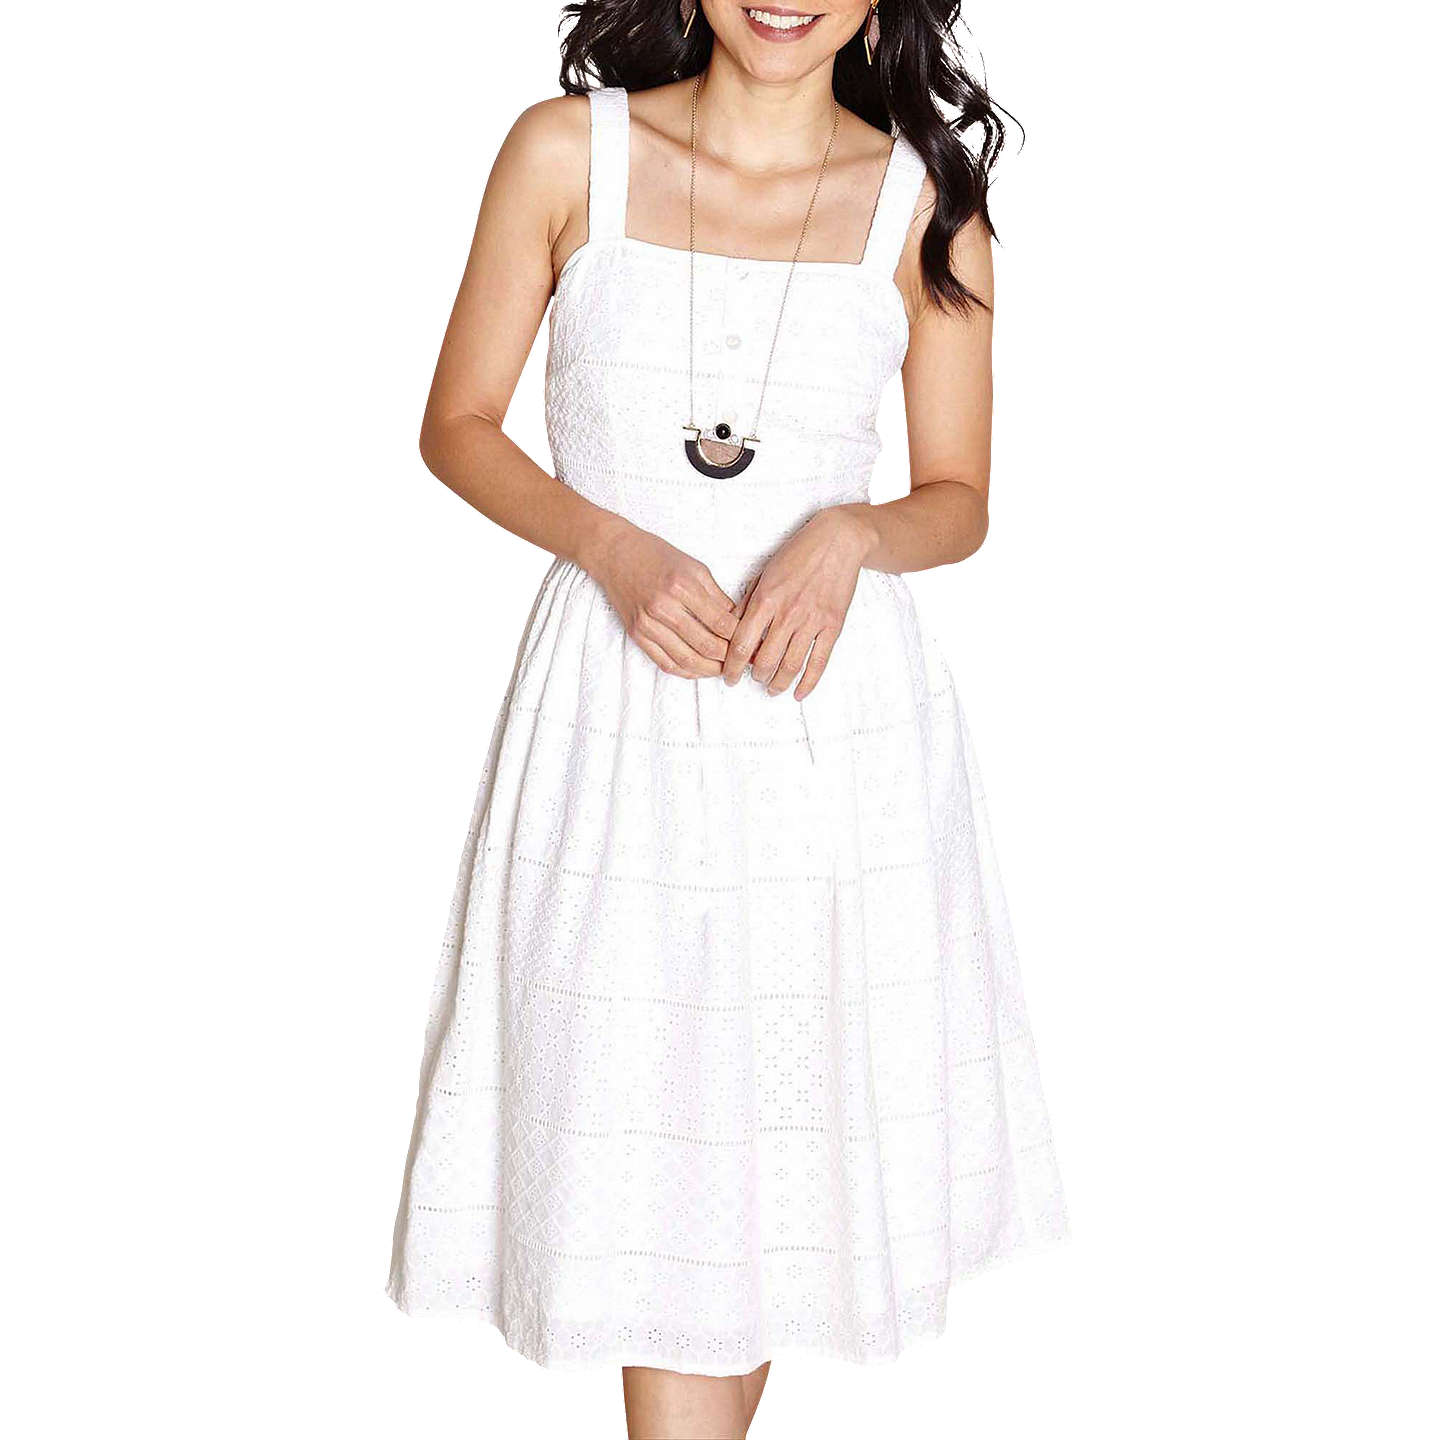 Yumi Broderie Sun Dress, Ivory by Yumi